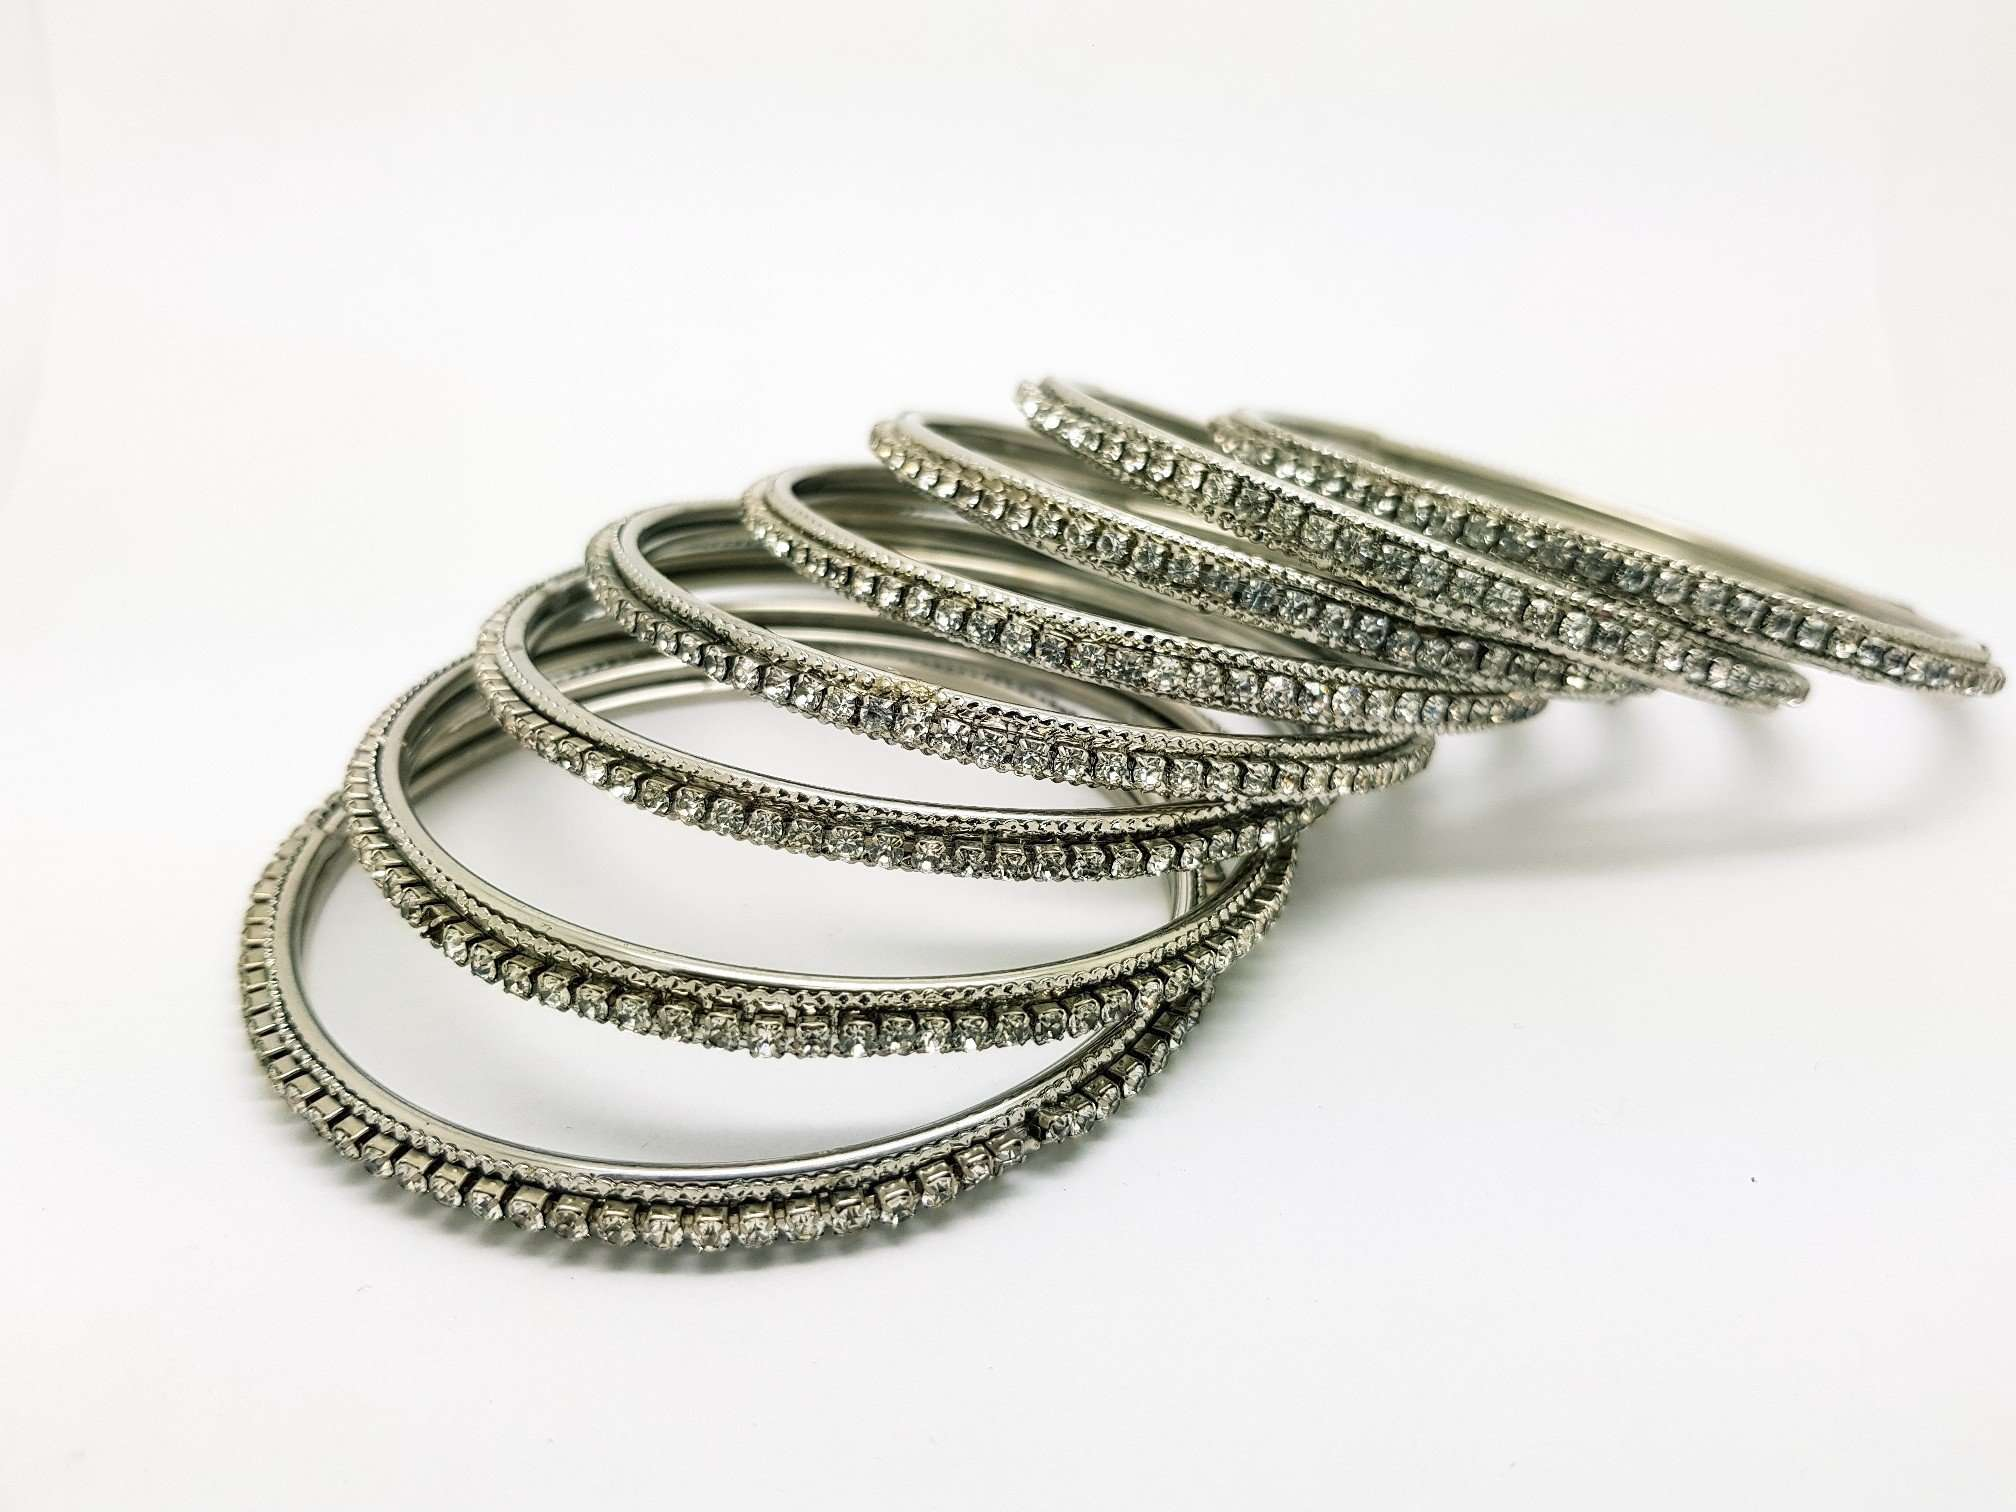 Prachy Creations : Set of Silver Finish Clear stone bangles (set of 8) - JAN1608KP-SIL-CLR, 2.4 (Sm) / Clear / Silver